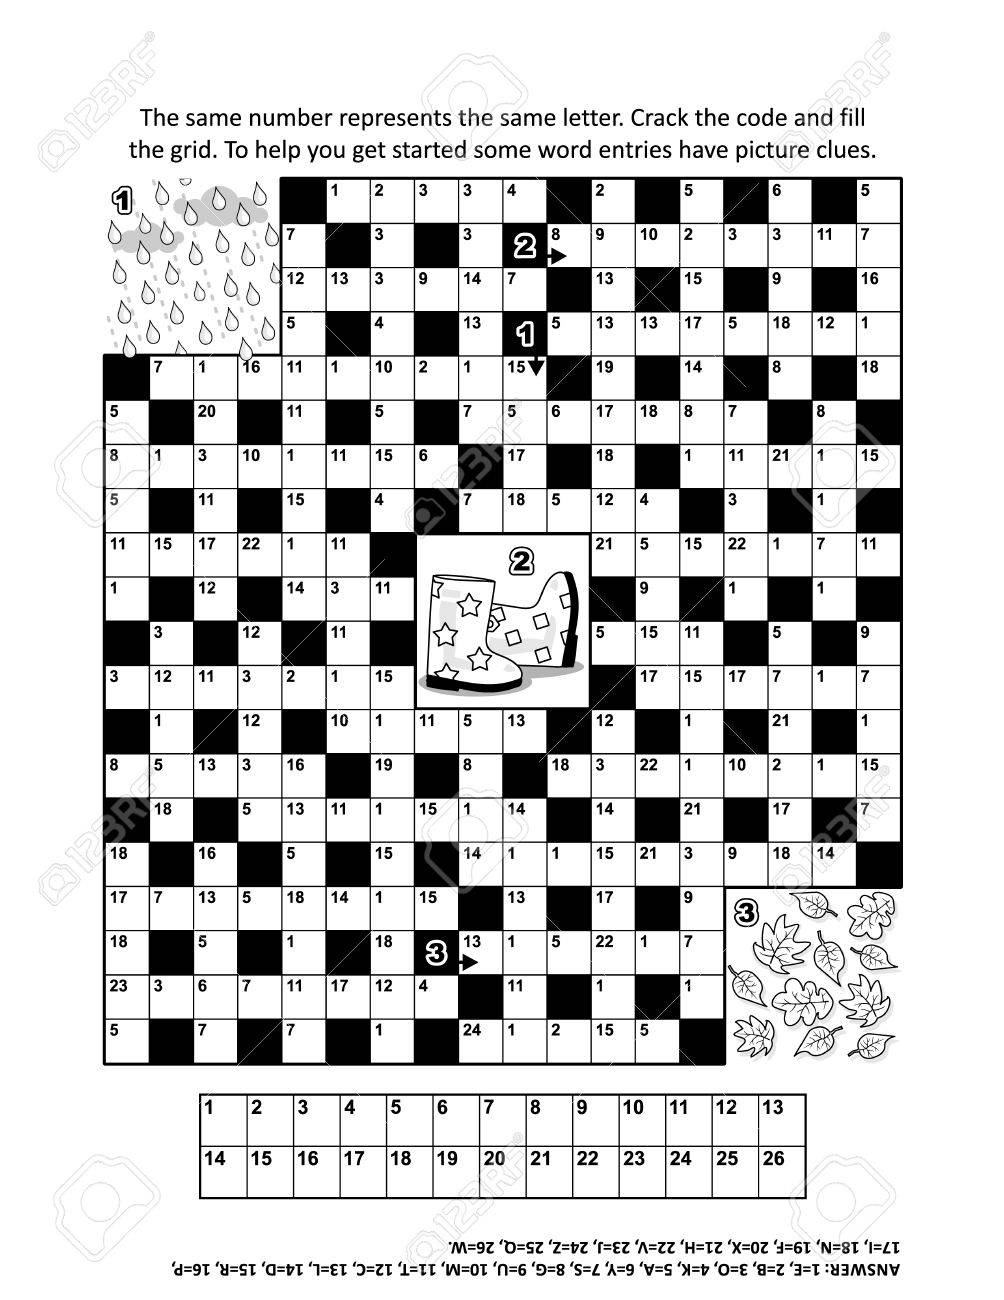 graphic about Codeword Puzzles Printable identified as Codebreaker (or codeword, or code cracker) crossword puzzle or..